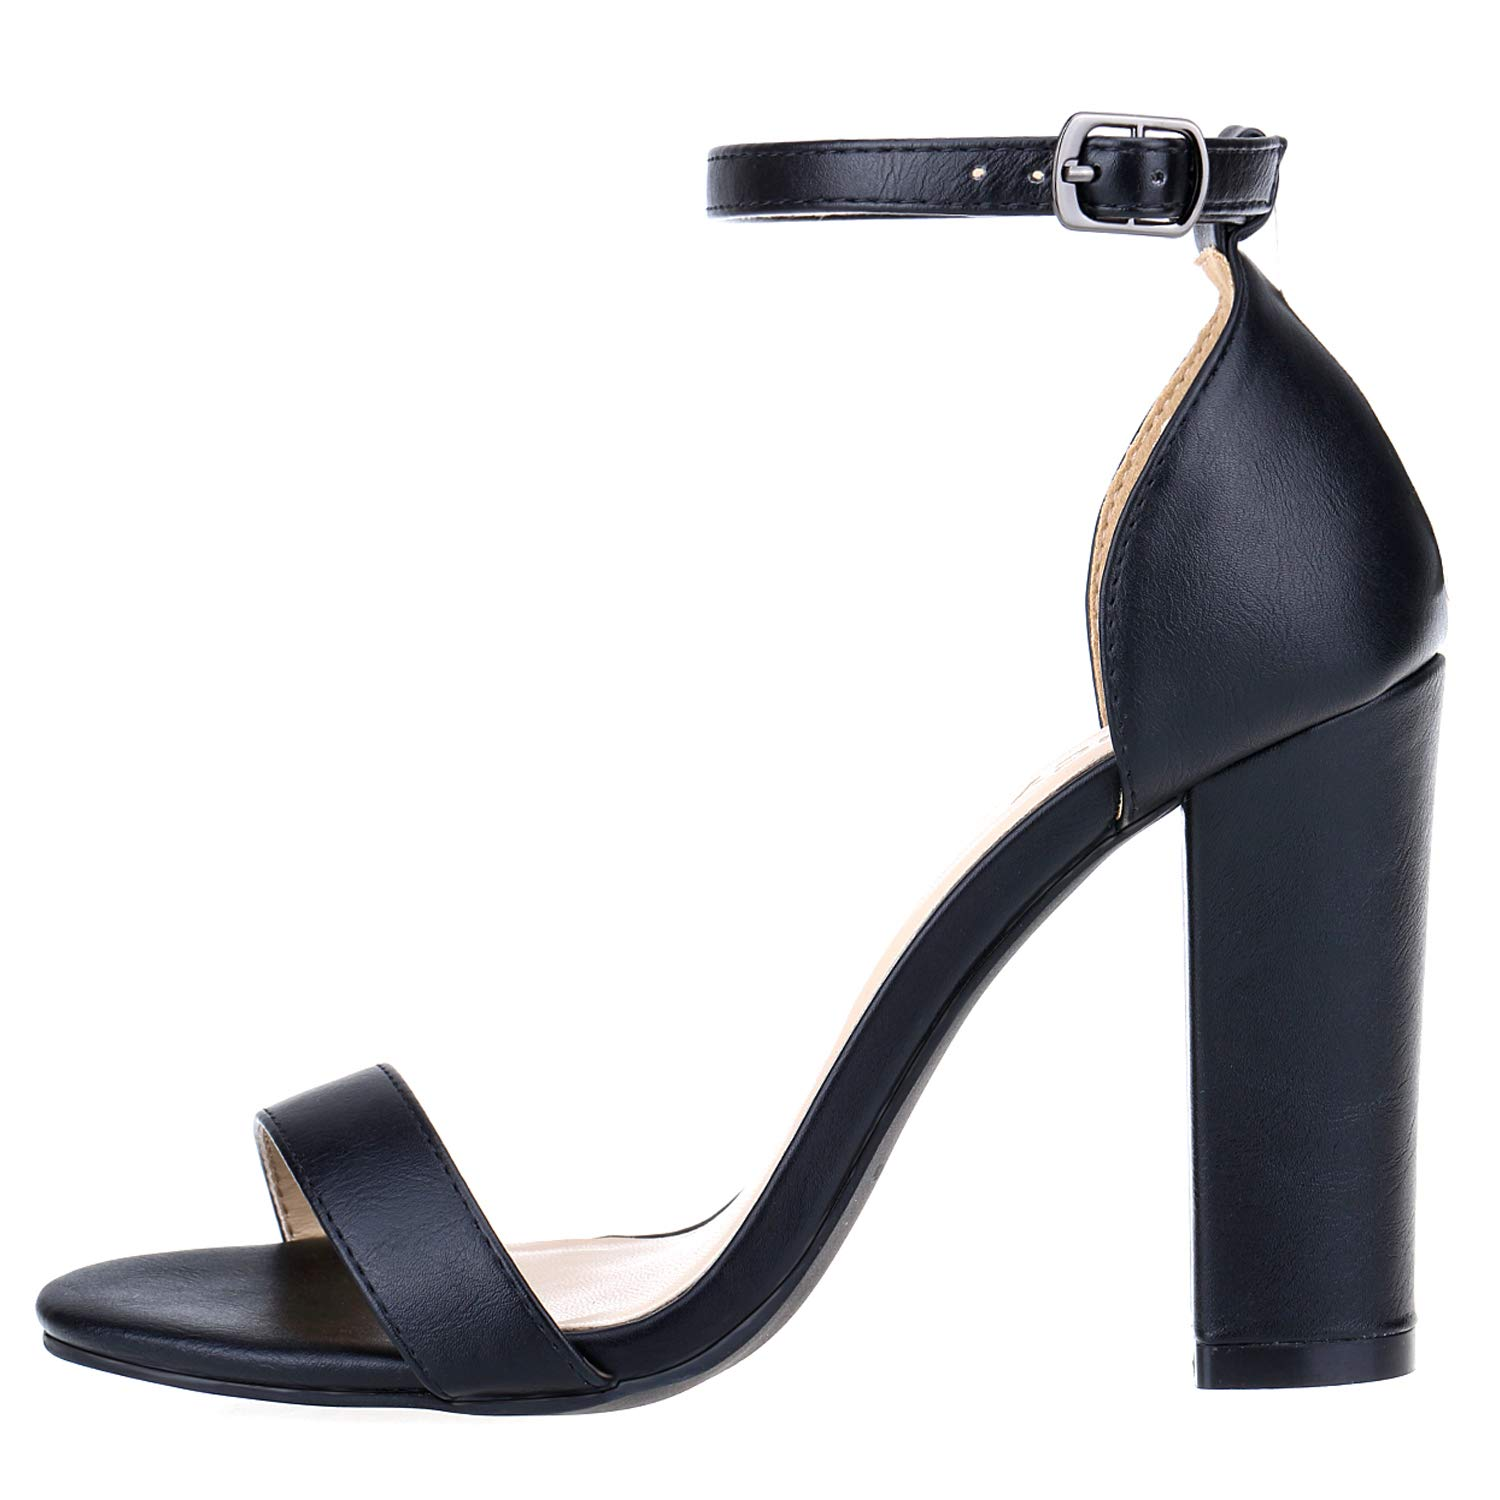 e91ec0b217f8c Women's Strappy Chunky Block Sandals Ankle Strap Open Toe High Heel for  Dress Wedding Party Evening Office Shoes Sandals